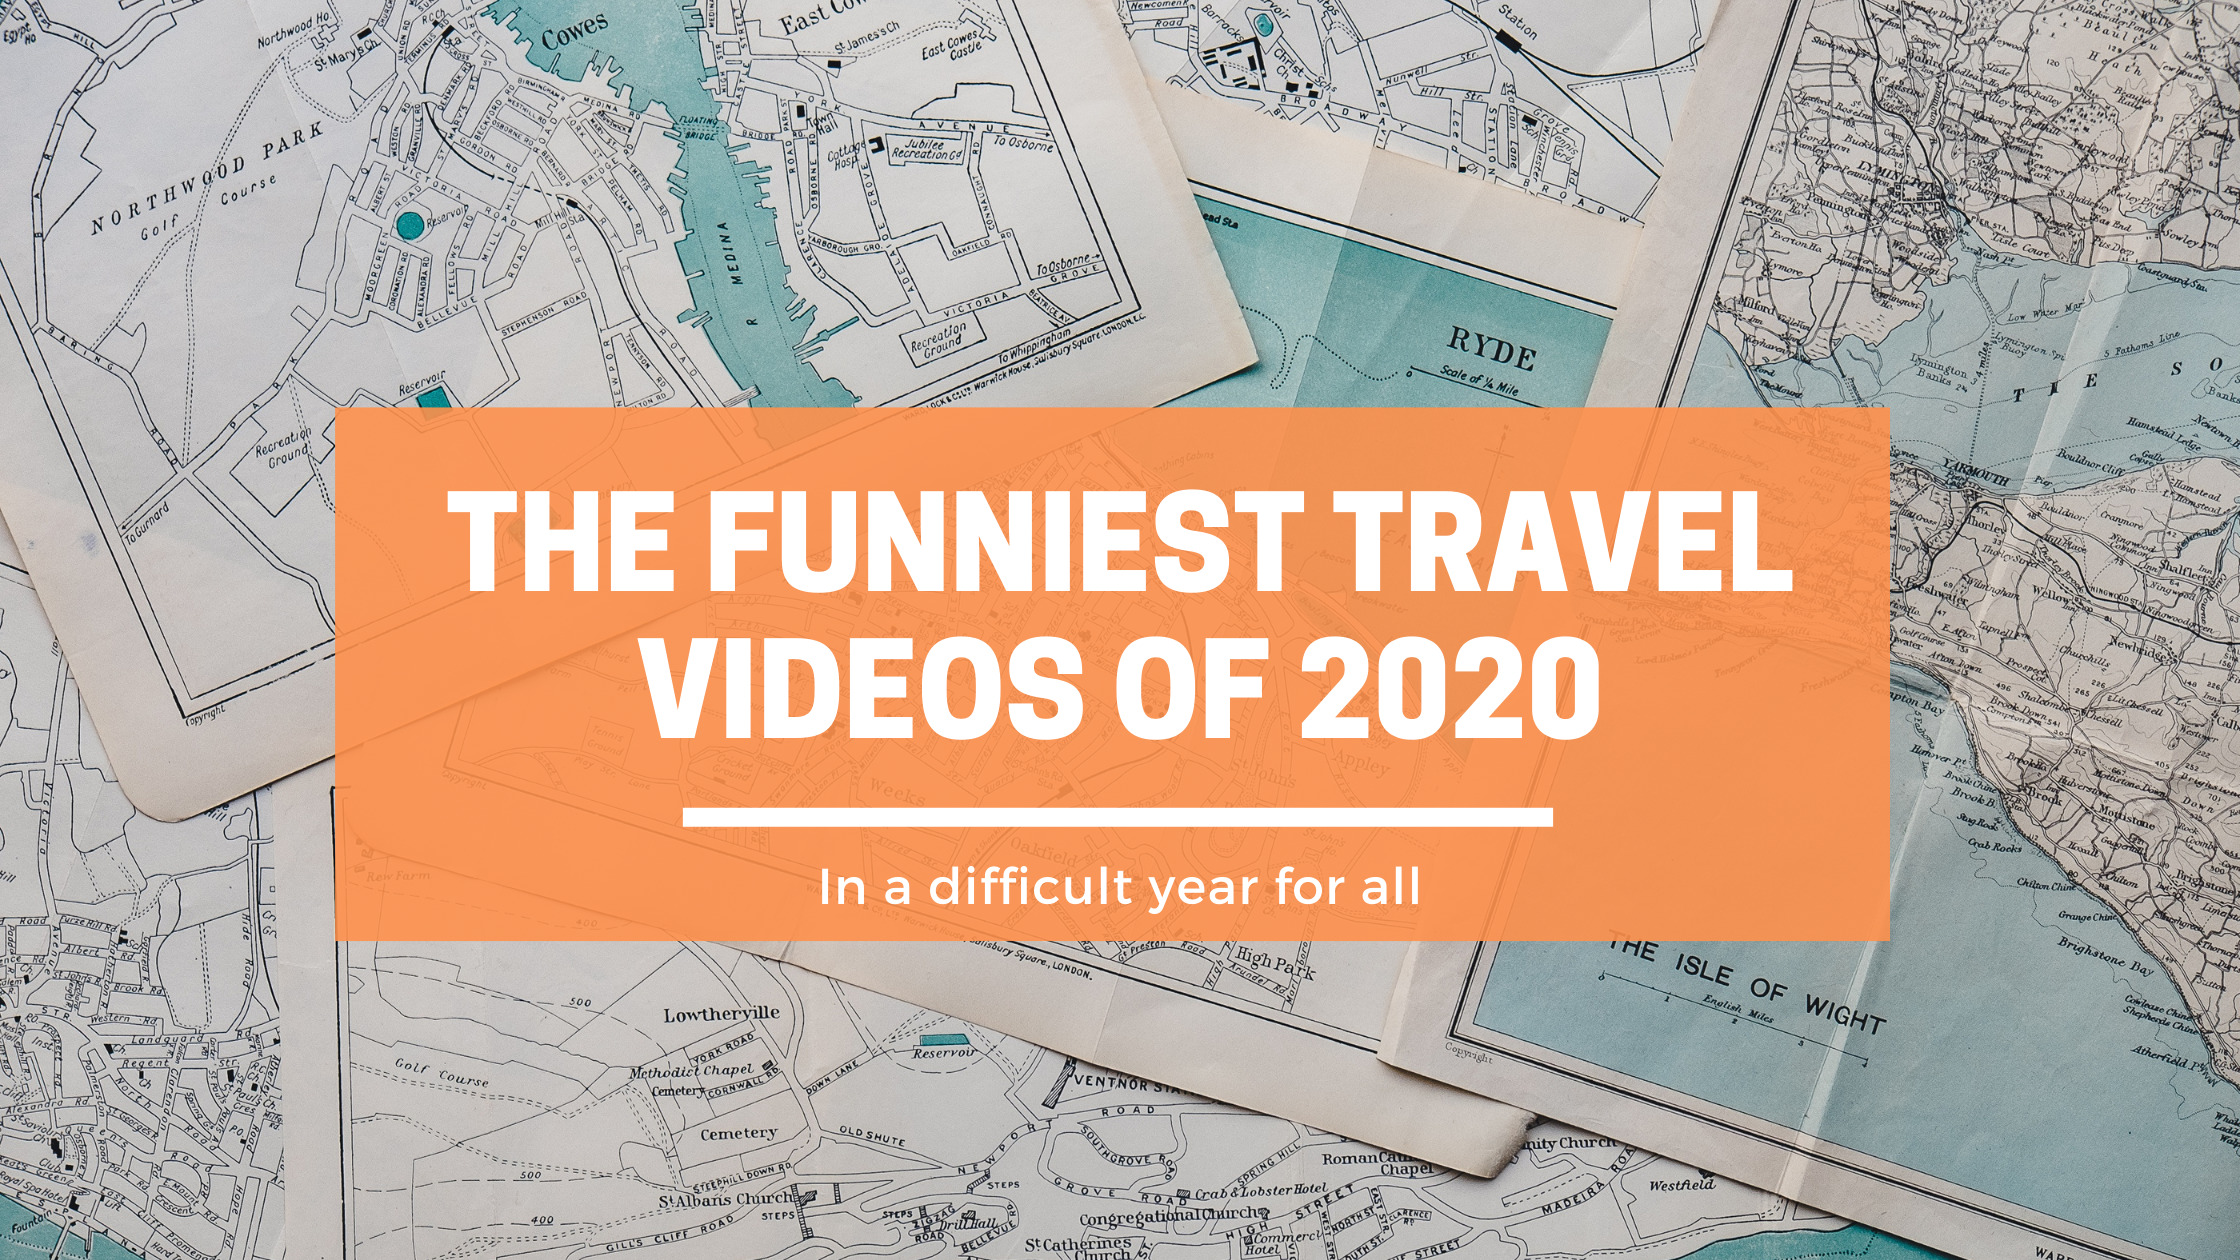 The Funniest Travel Videos of 2020